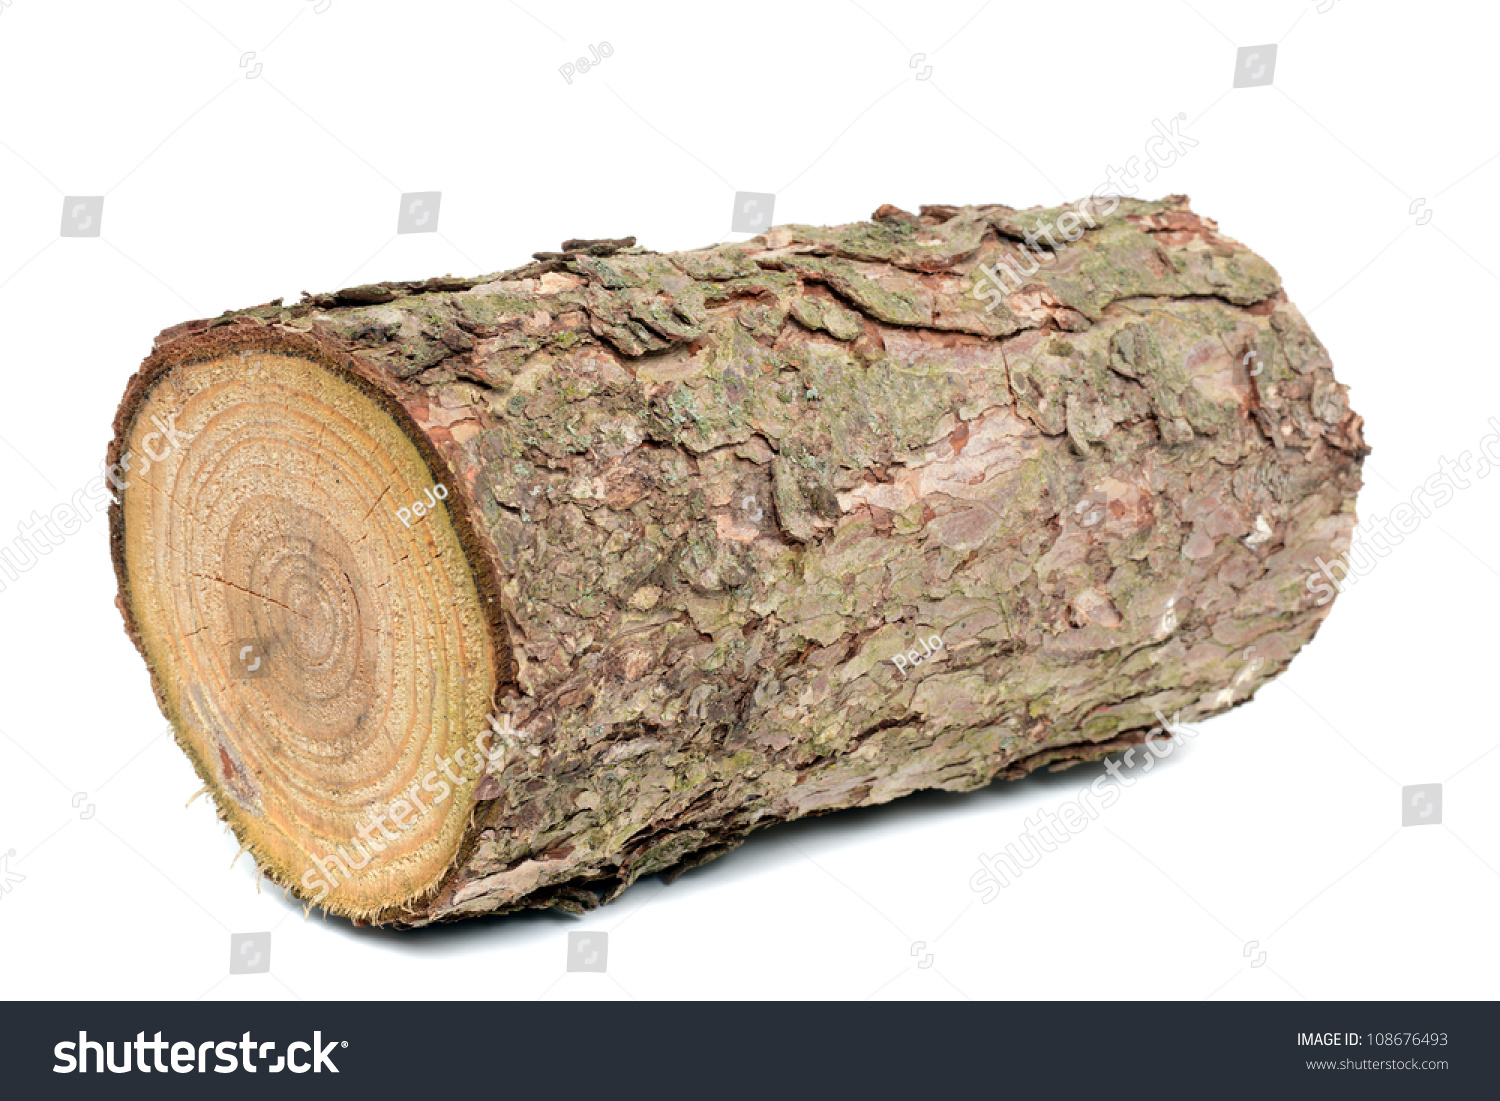 Http Www Shutterstock Com Pic 108676493 Stock Photo Wood Log As Fire Wood In Front Of A White Background Html